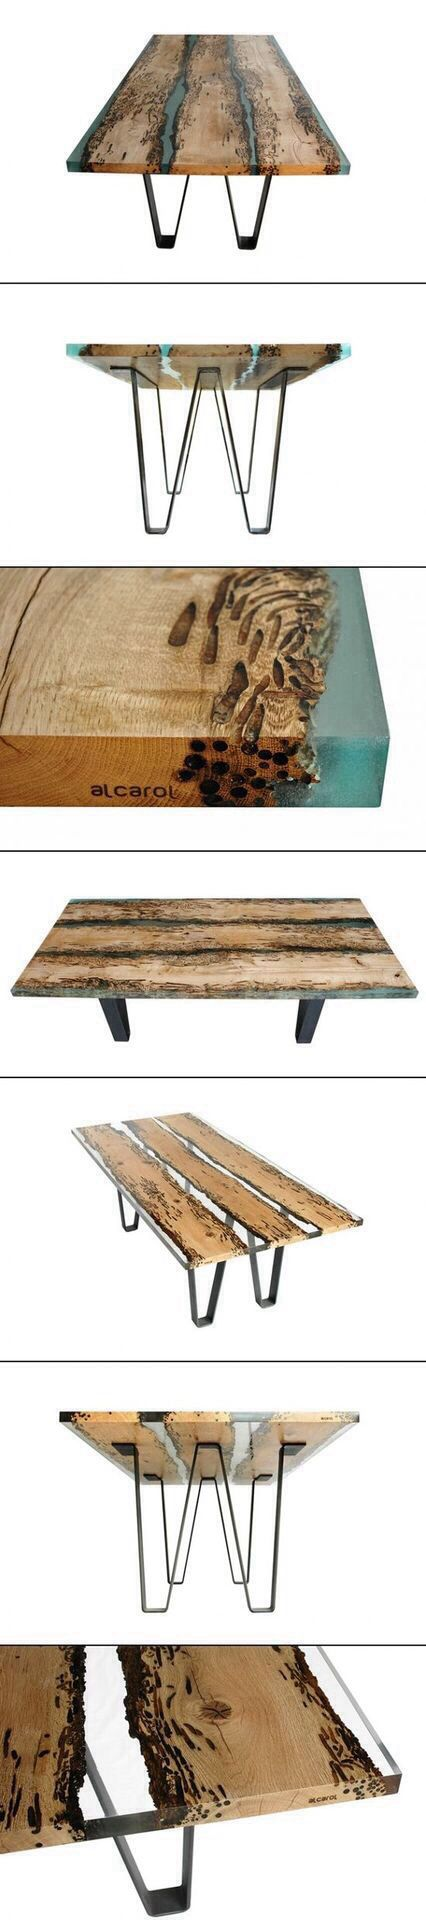 183 Best Epoxy Resin Images On Pinterest